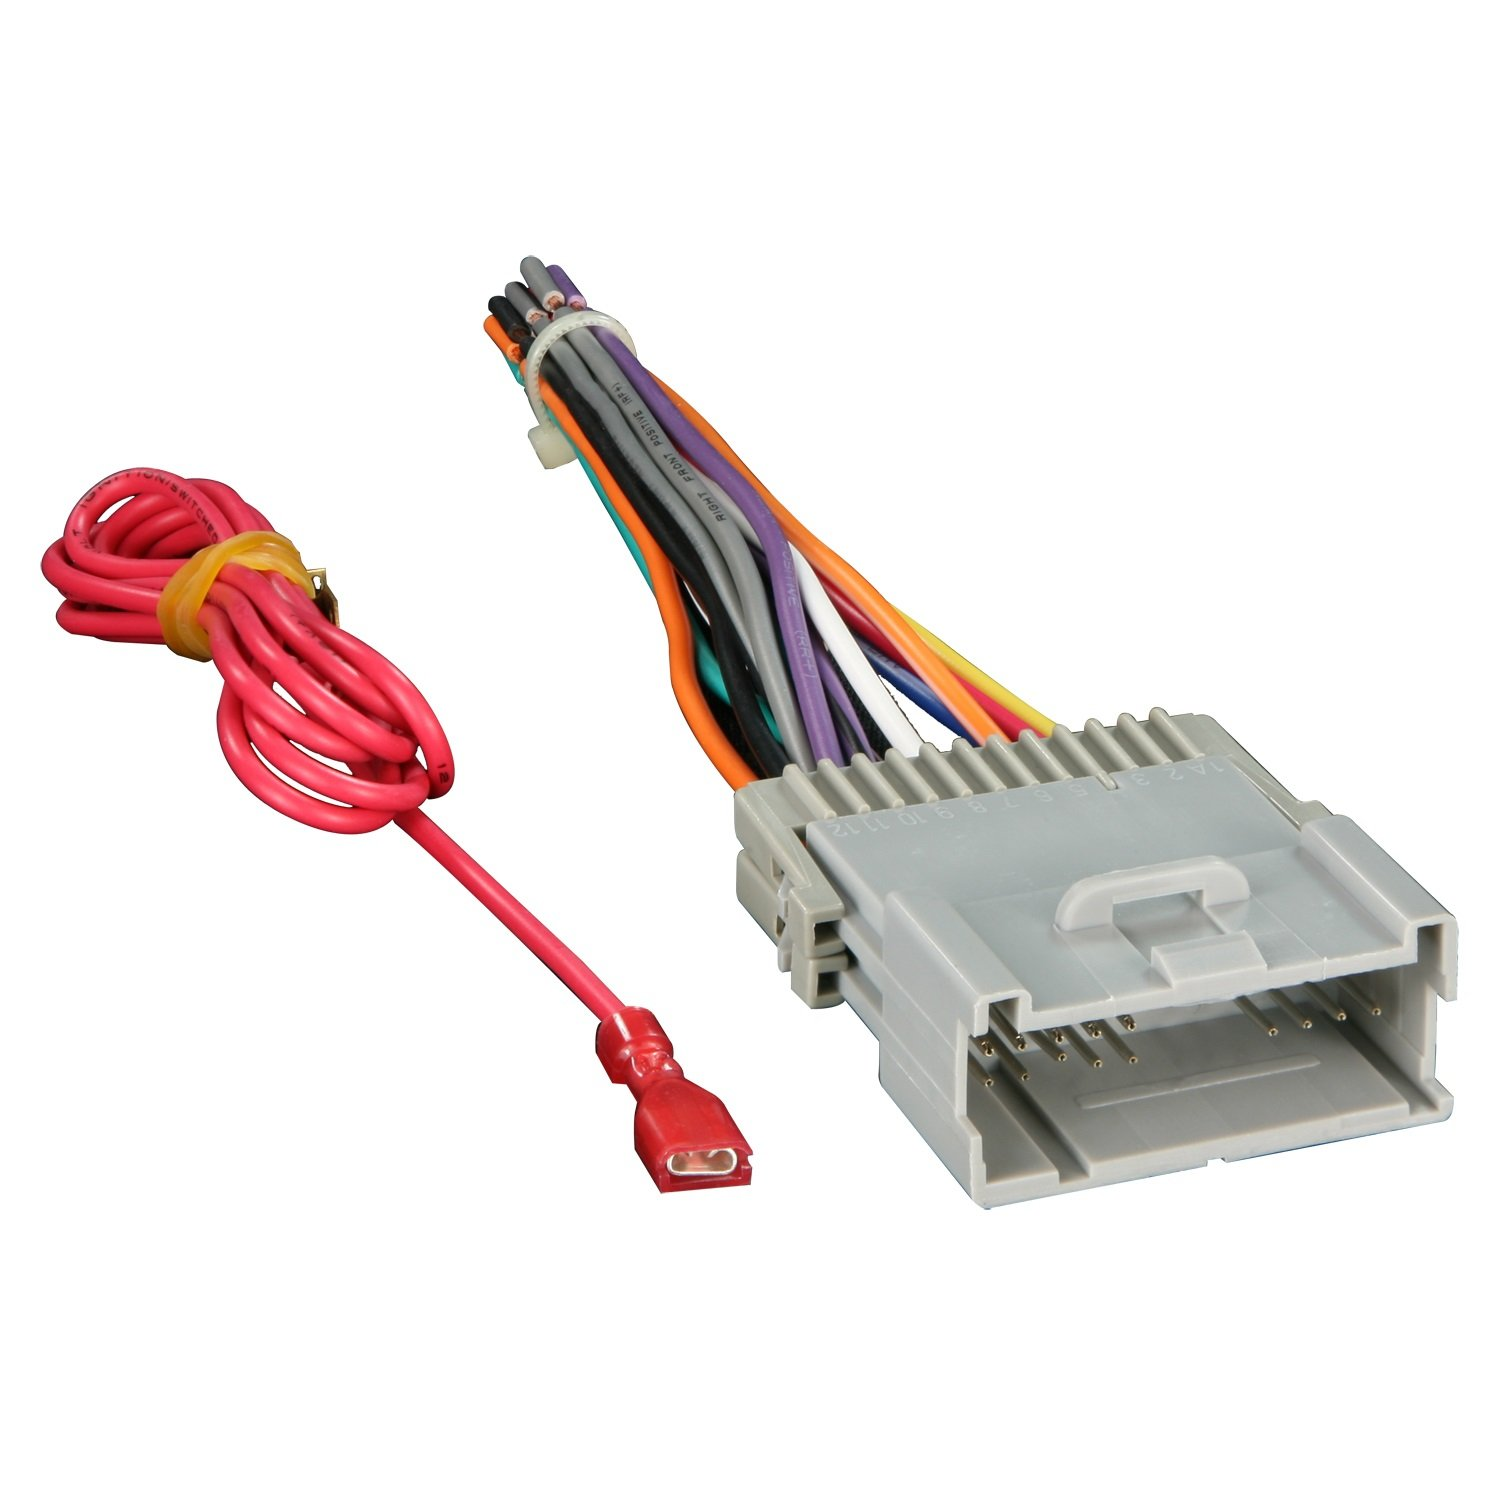 61eewxp9orL._SL1500_ amazon com metra 70 2003 radio wiring harness for gm 98 08 wiring harness adapter for car stereo walmart at mifinder.co